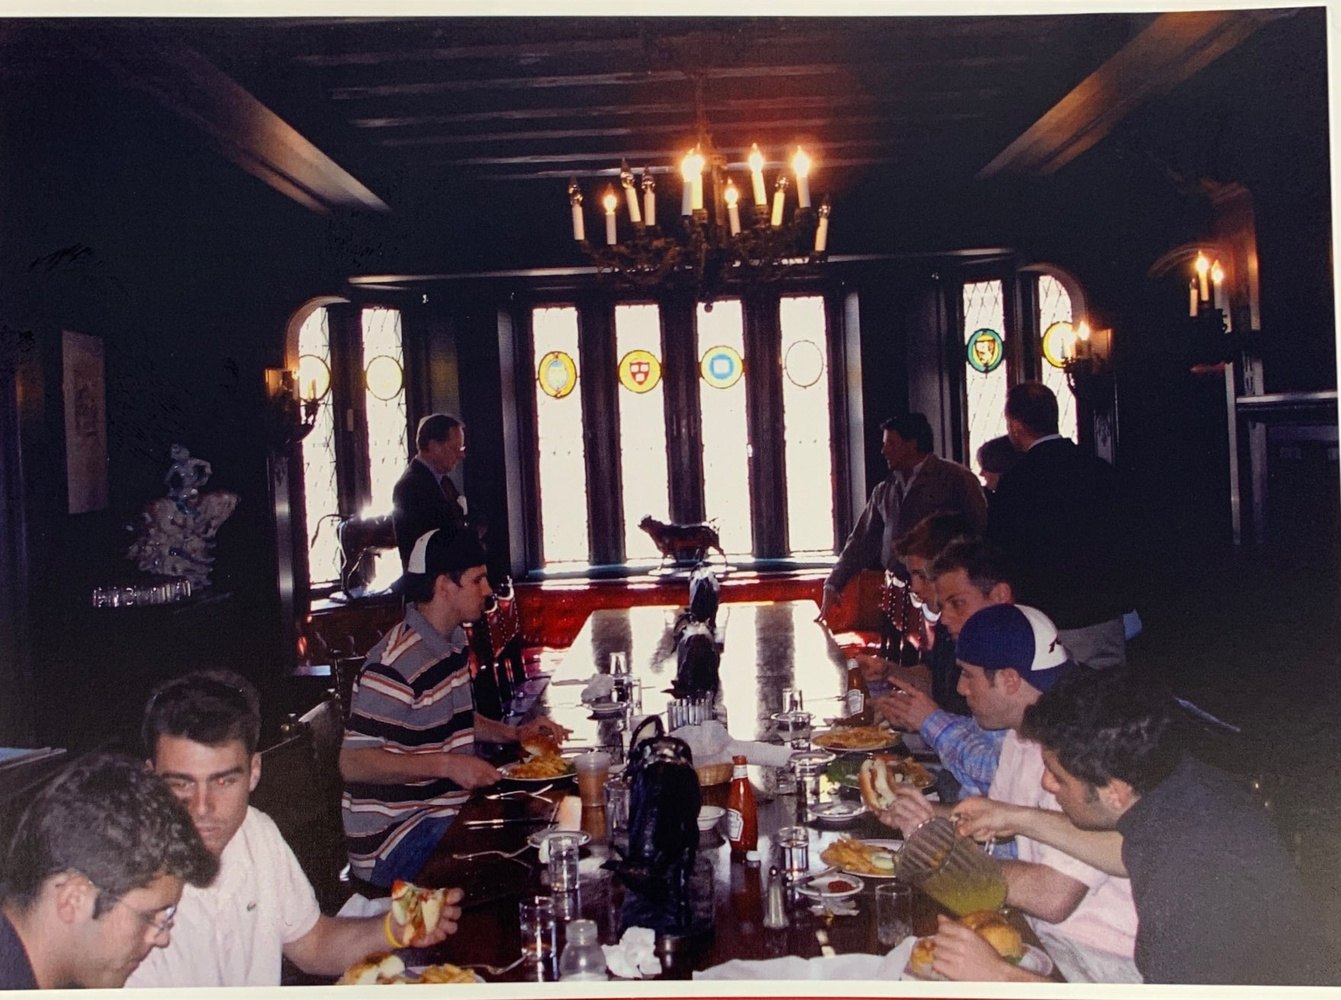 Members of the A.D. club enjoy a meal in the clubhouse.